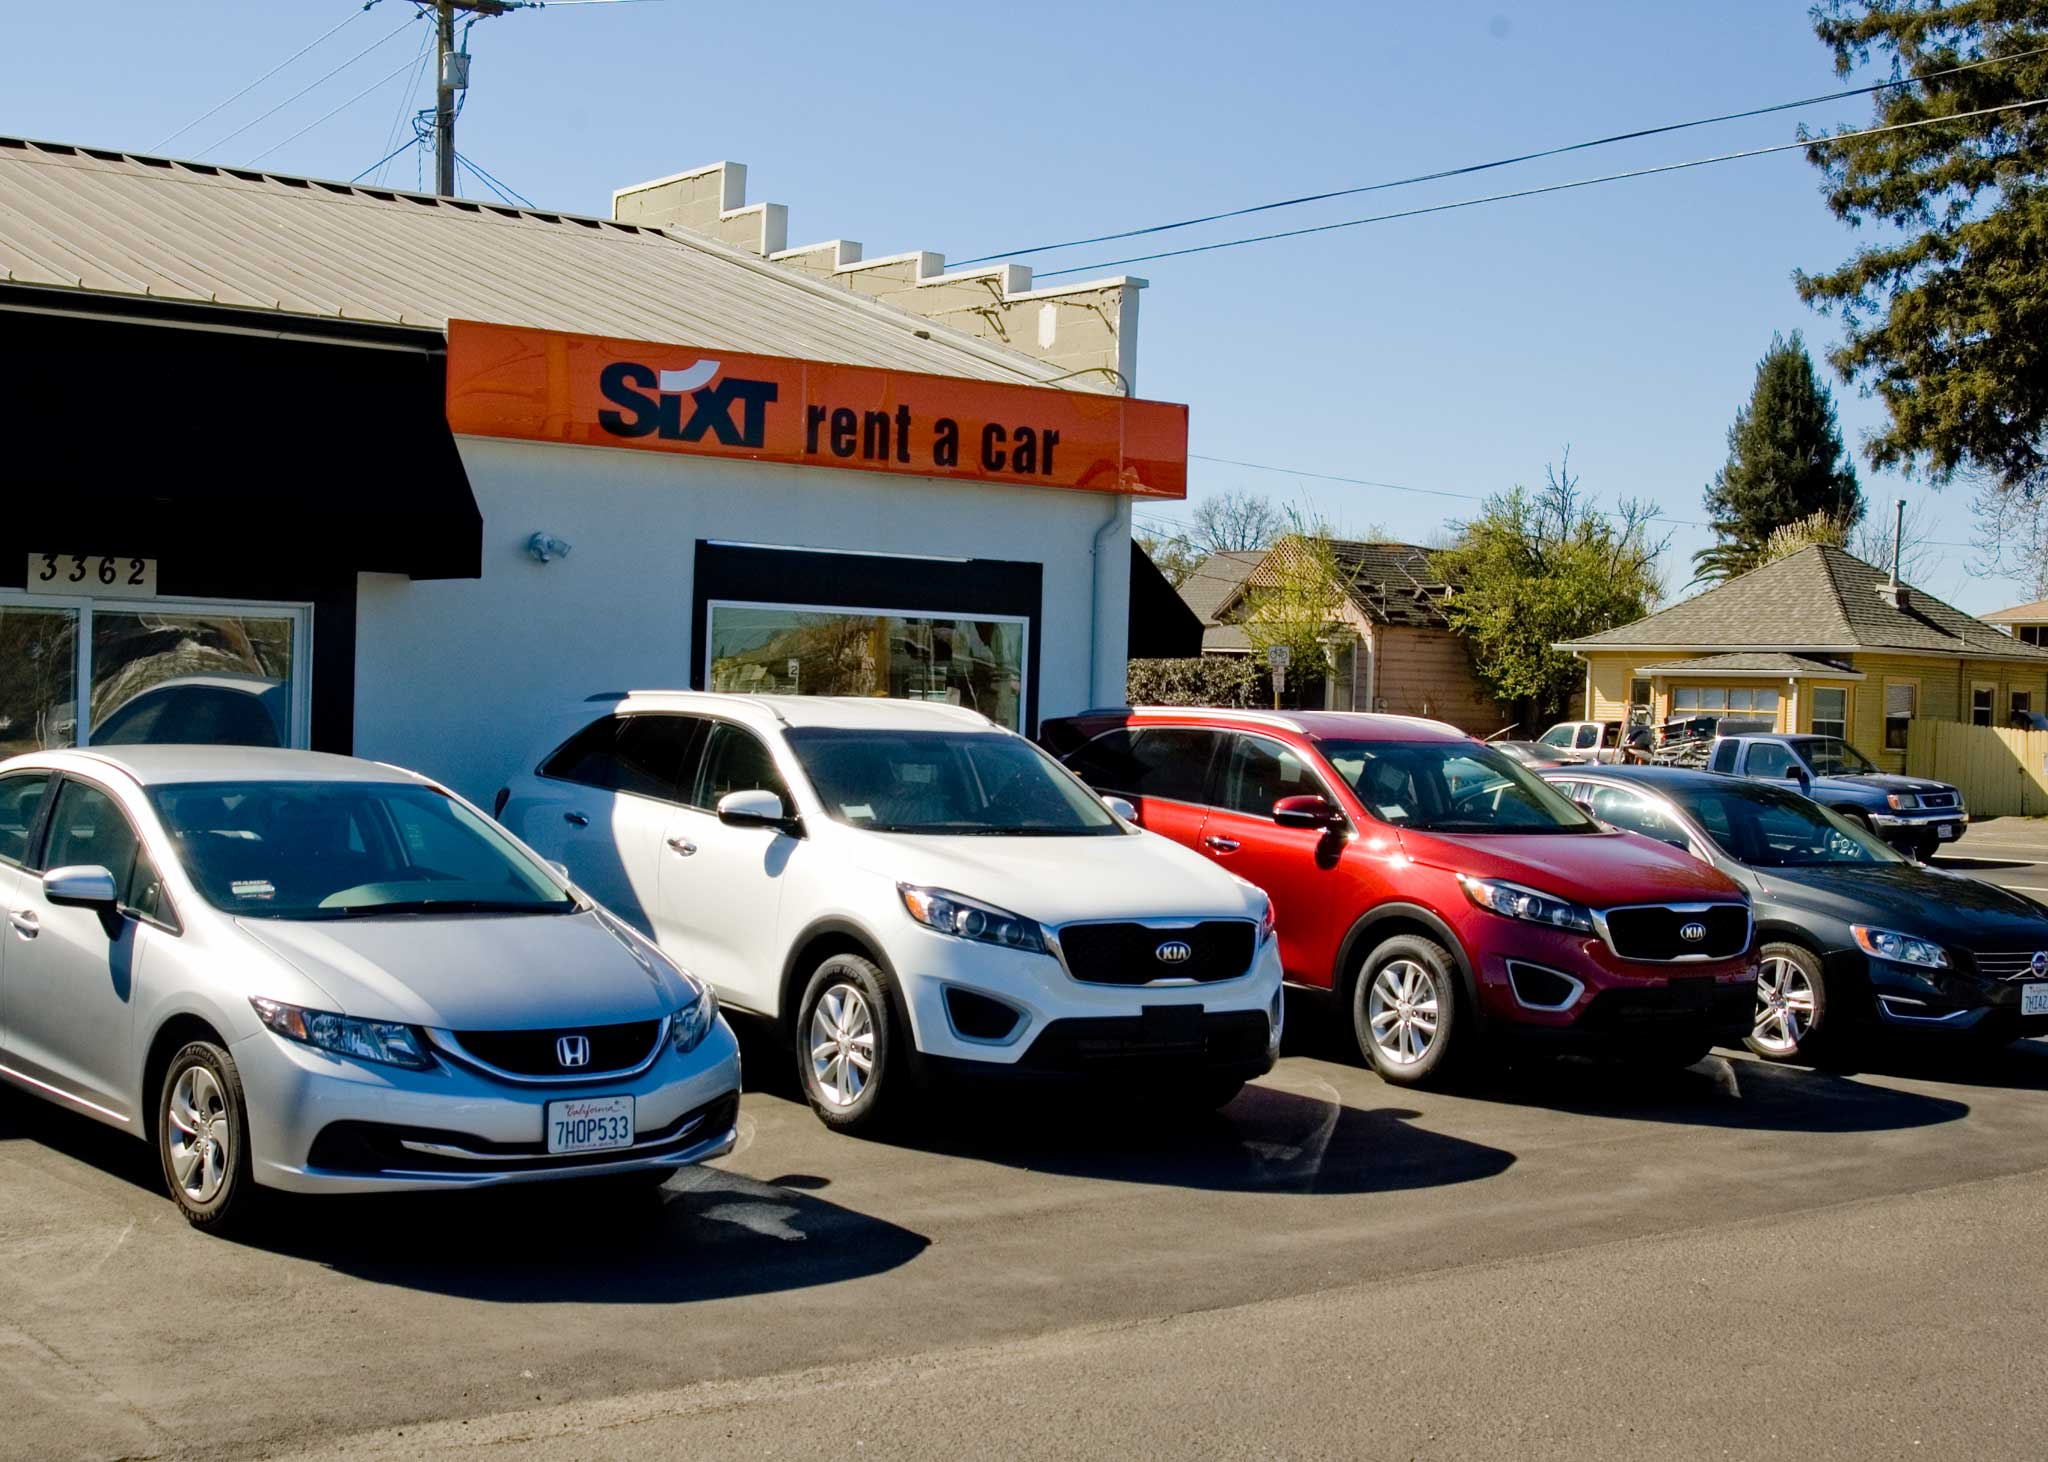 used car deals from sixt rental cars of santa rosa – see more auto